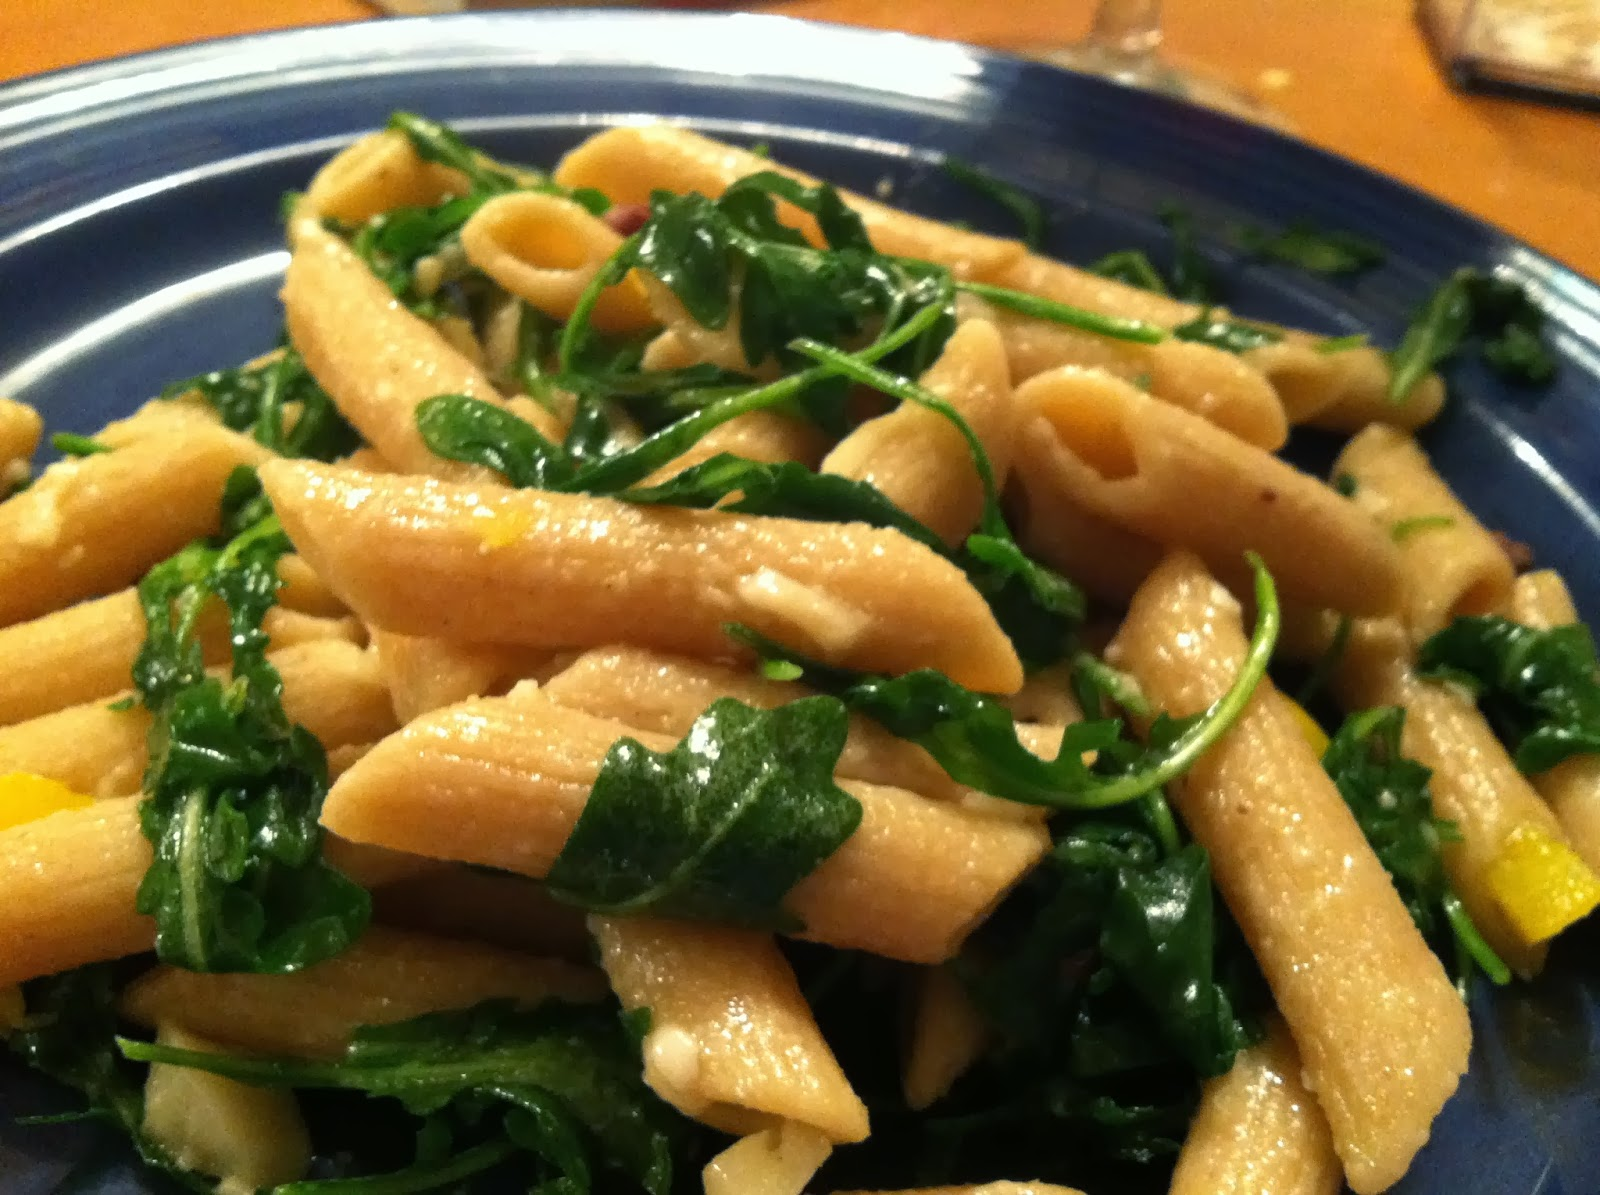 putting together various items in fridge with pasta makes a budget friendly meal. Cooking Chat tips.